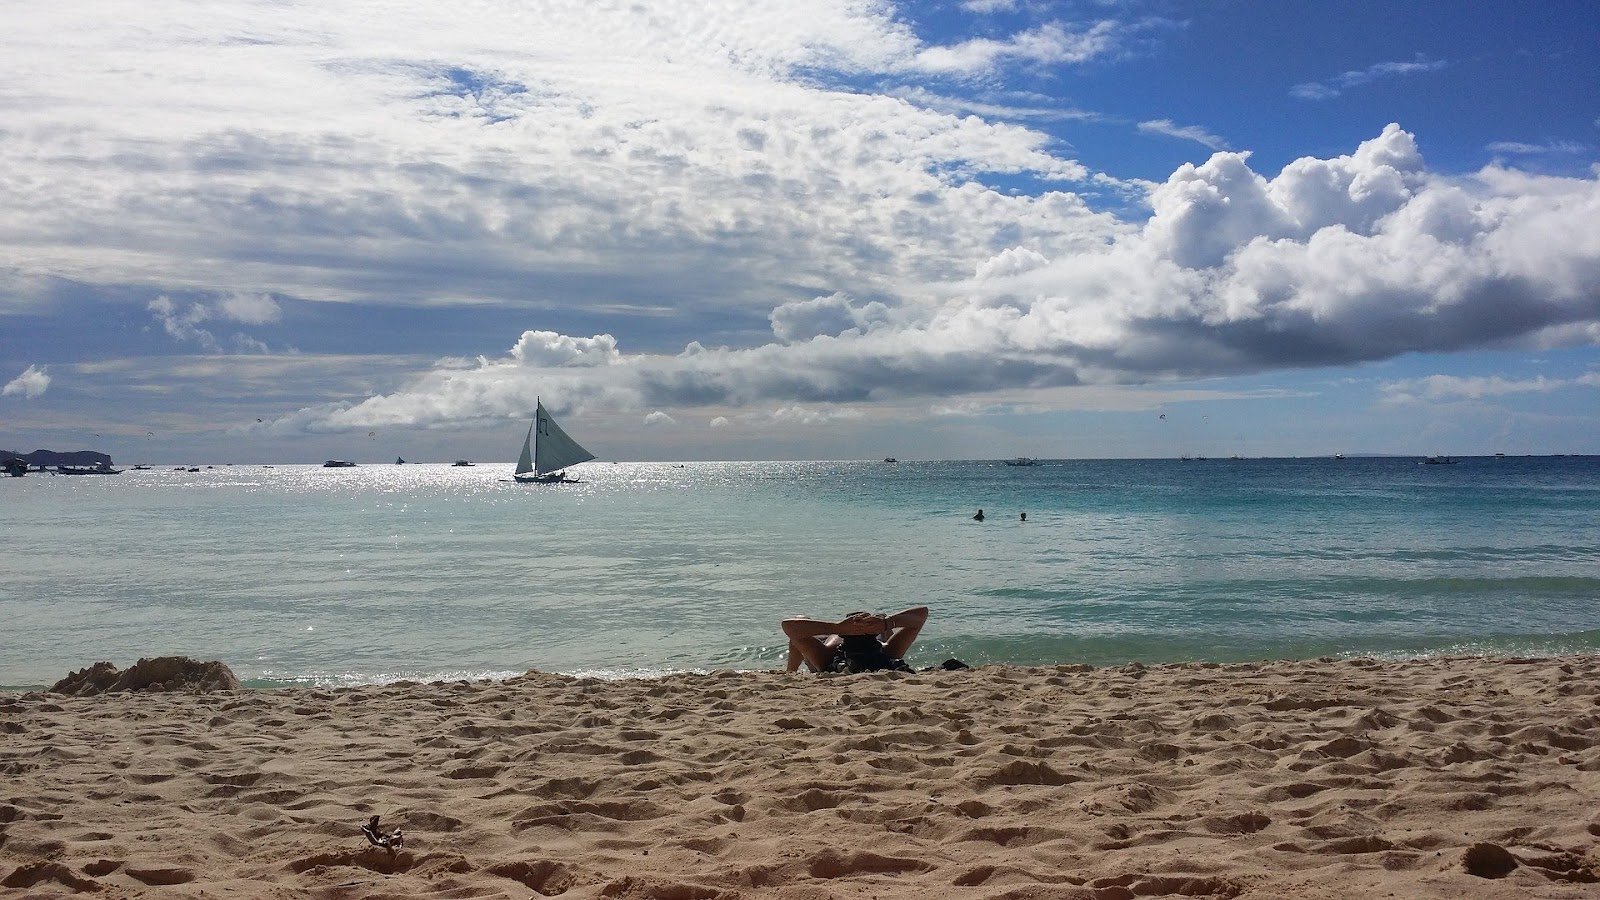 A lone person lying on a Boracay beach, with a sailboat in the distance